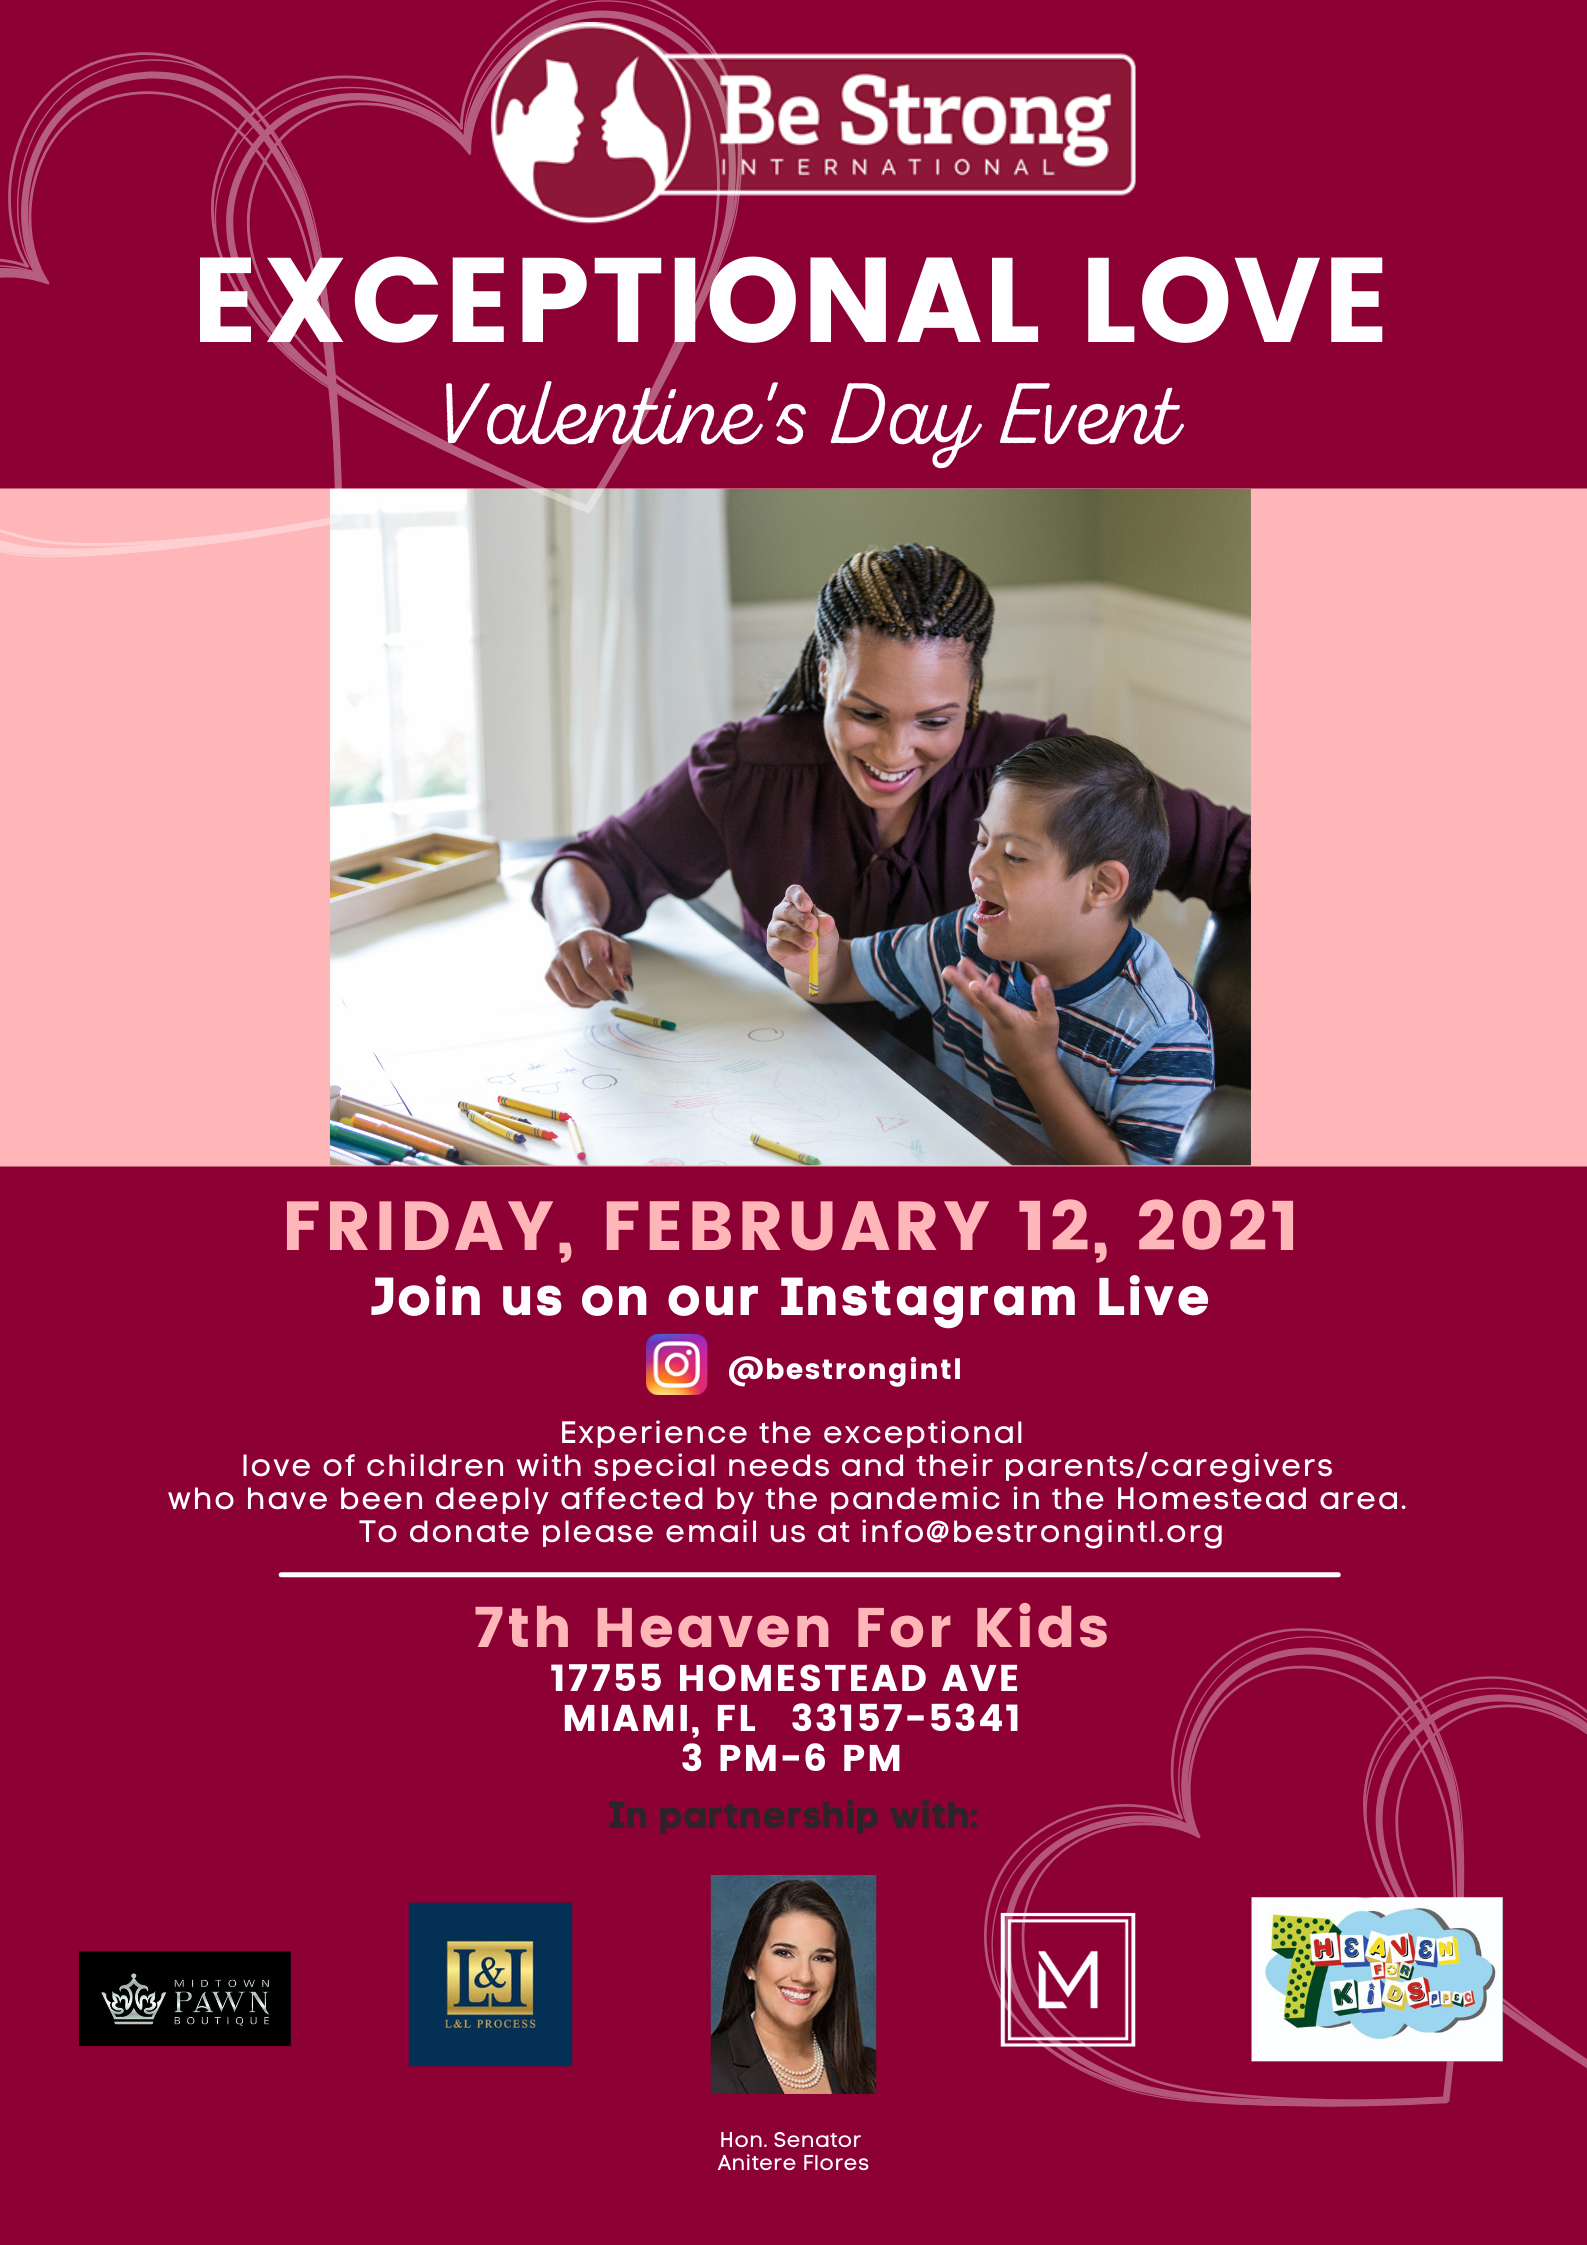 Special Needs Kids Get Exceptional Love from Be Strong Int'l for Valentine's Day